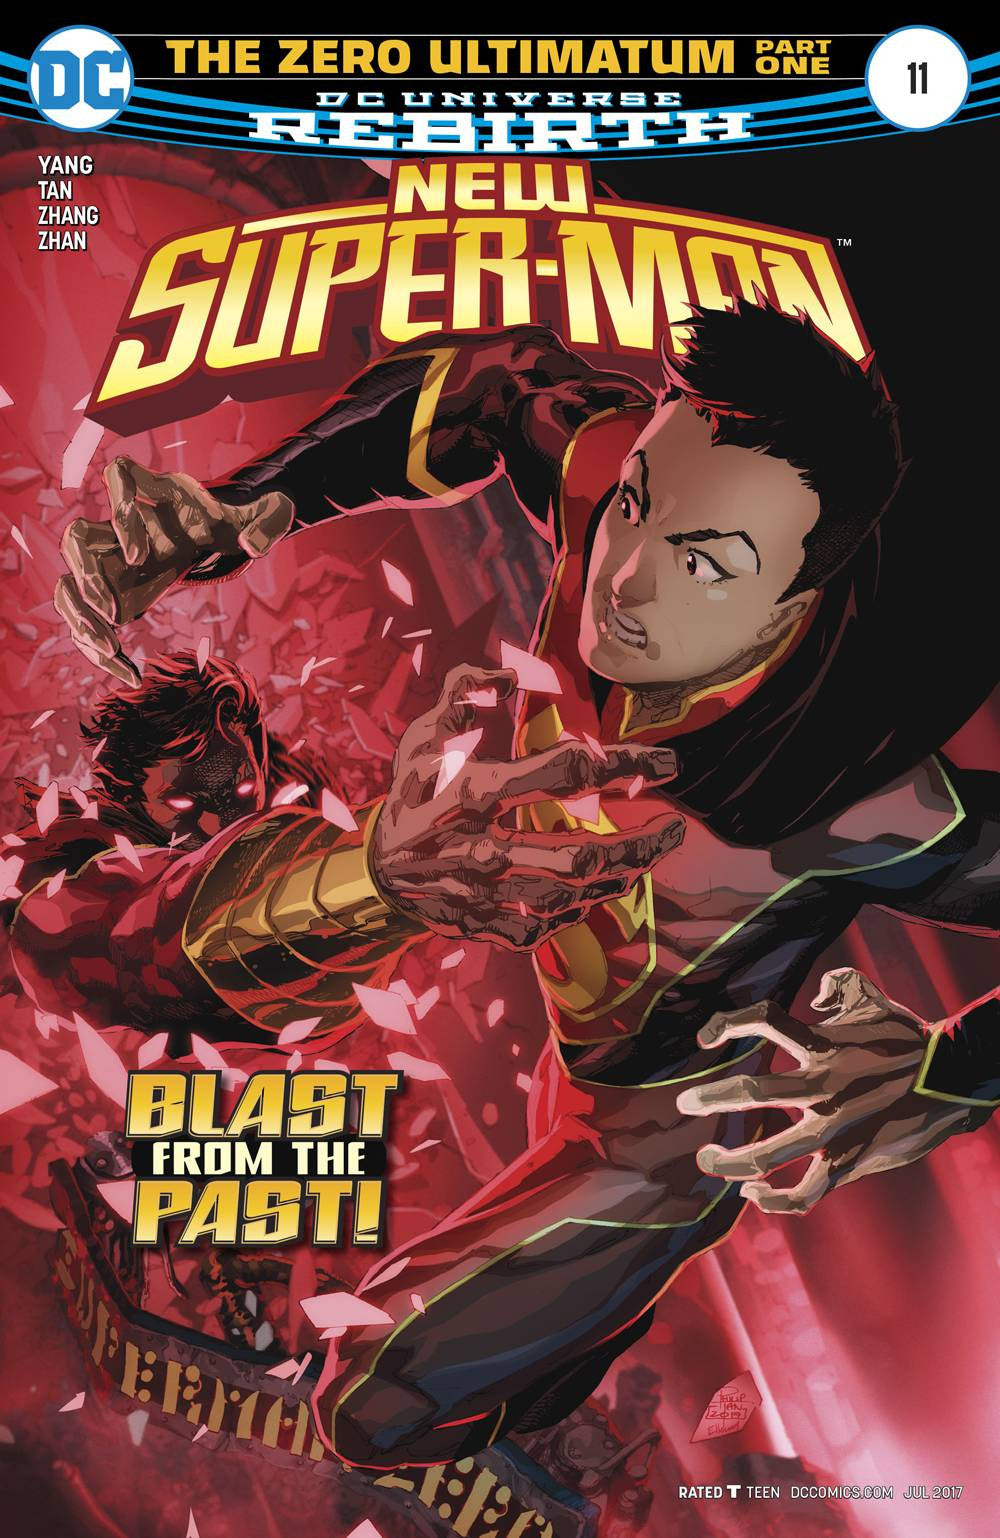 NEW SUPER MAN #11